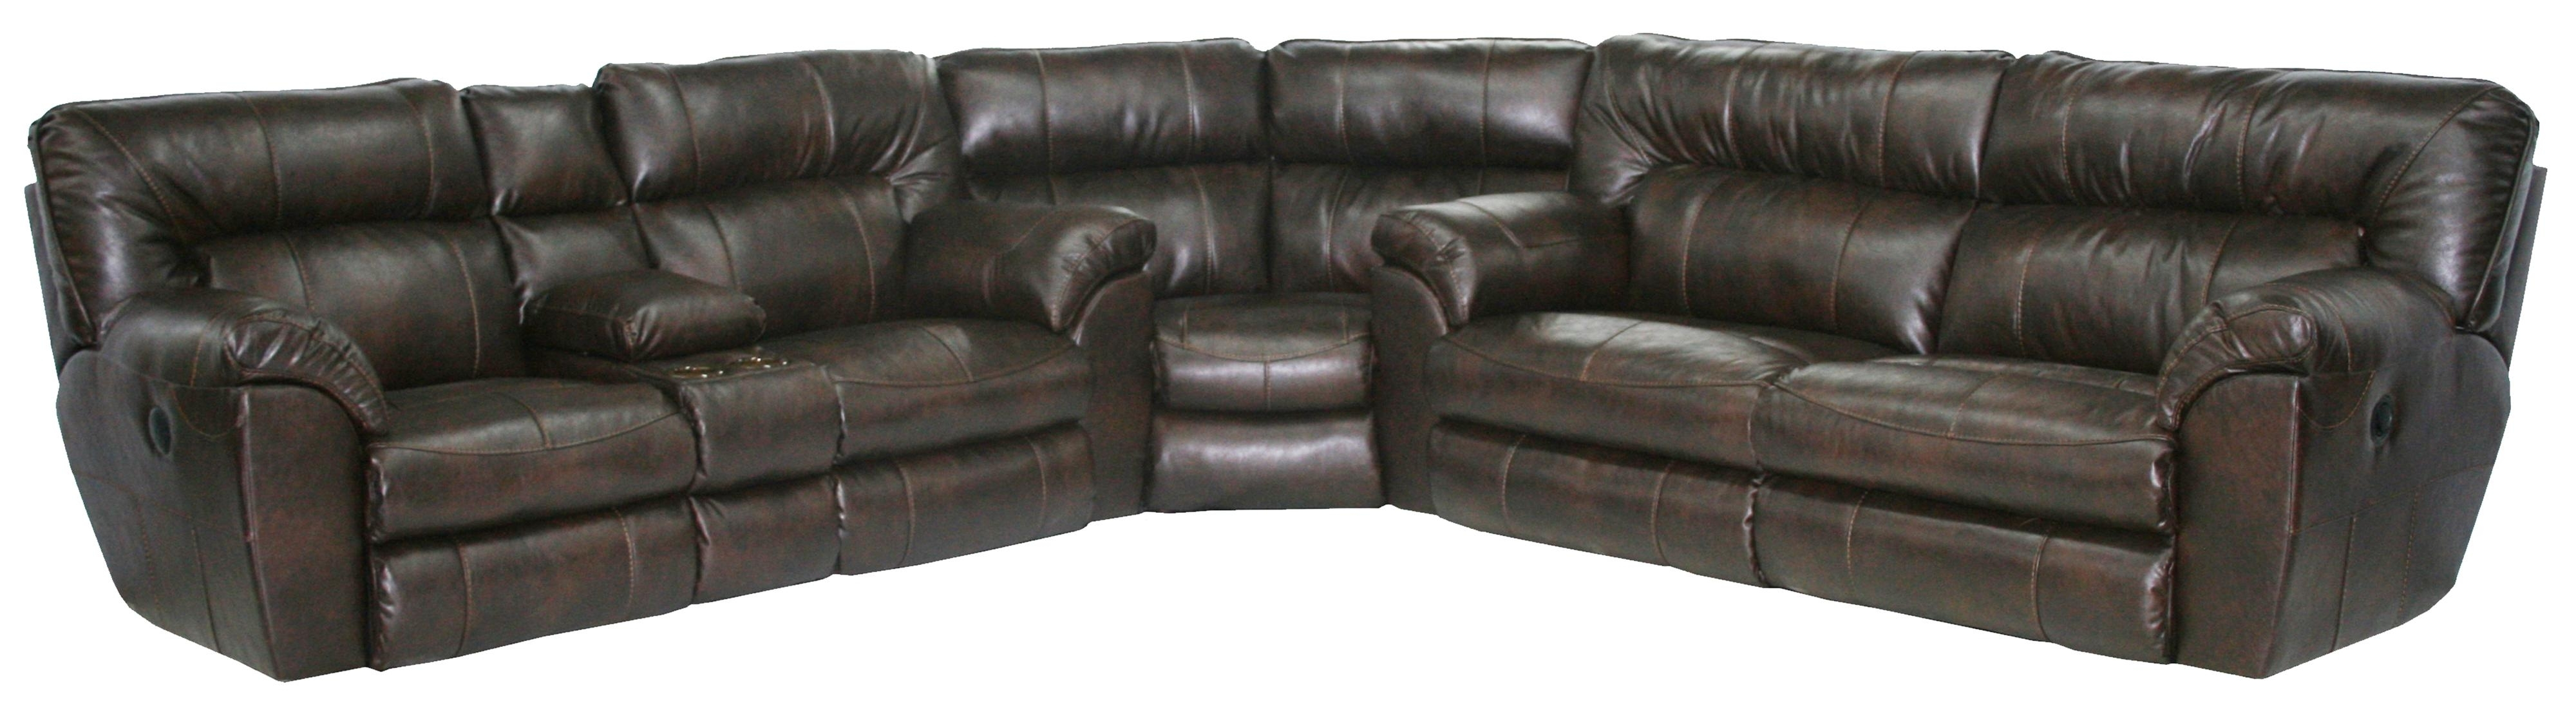 Power Reclining Sectional Sofa With Left Consolecatnapper | Wolf Throughout Sectional Sofas With Consoles (View 7 of 10)